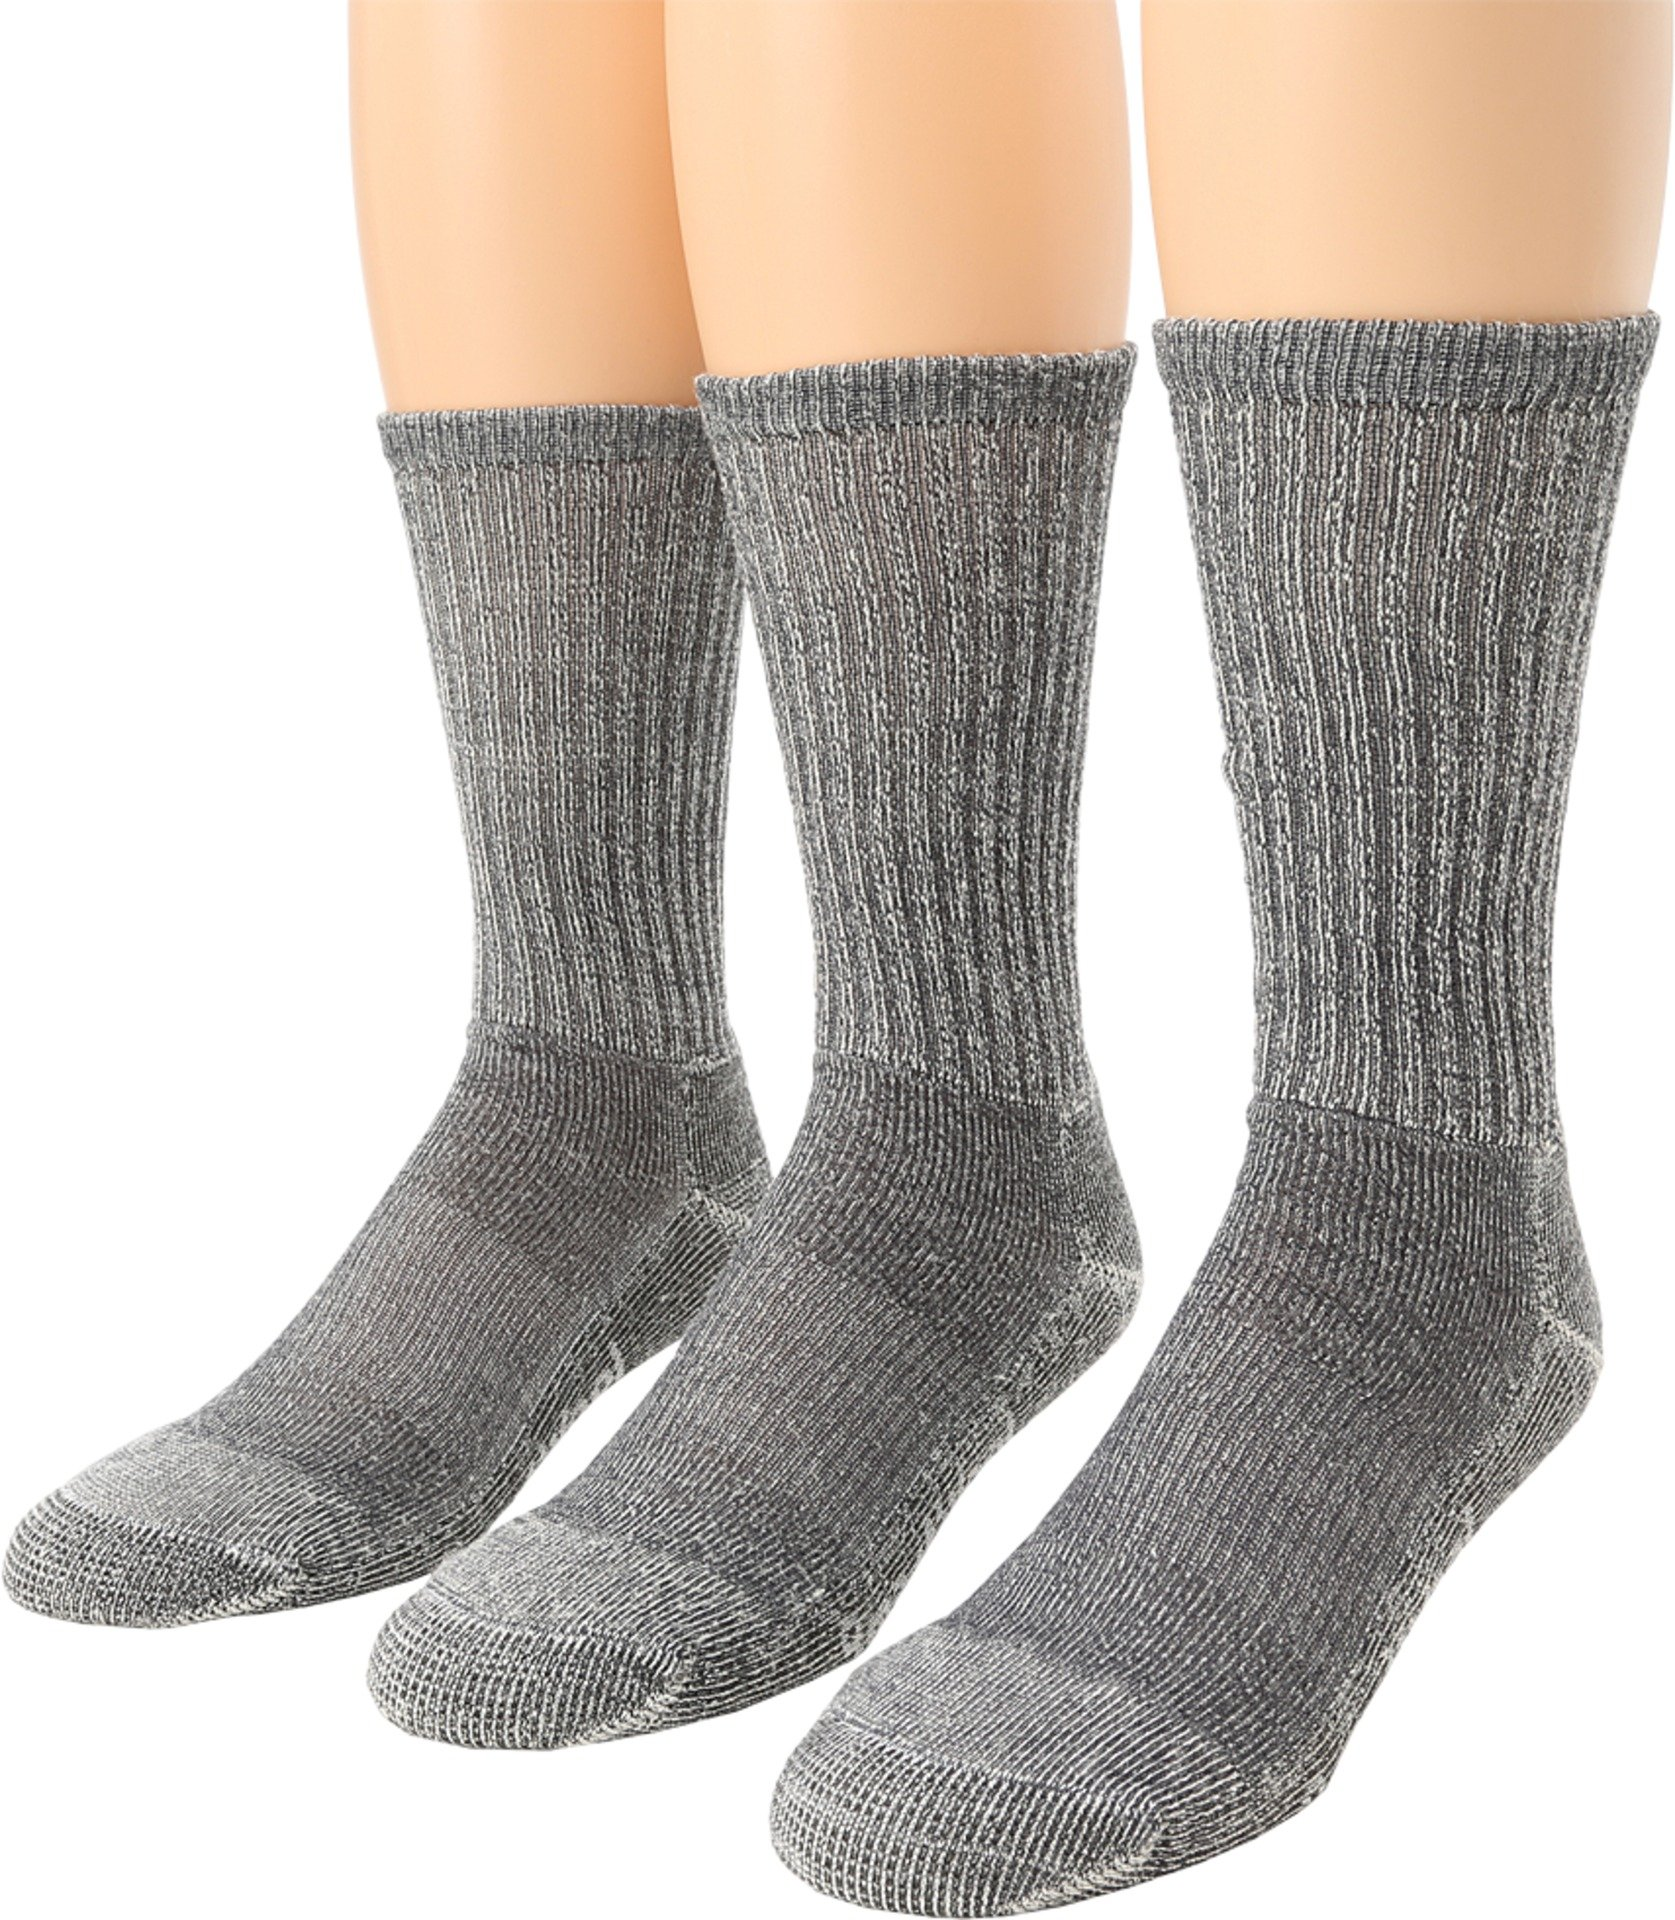 Smartwool Men's Hike Light Crew 3-Pack Gray Medium by SmartWool